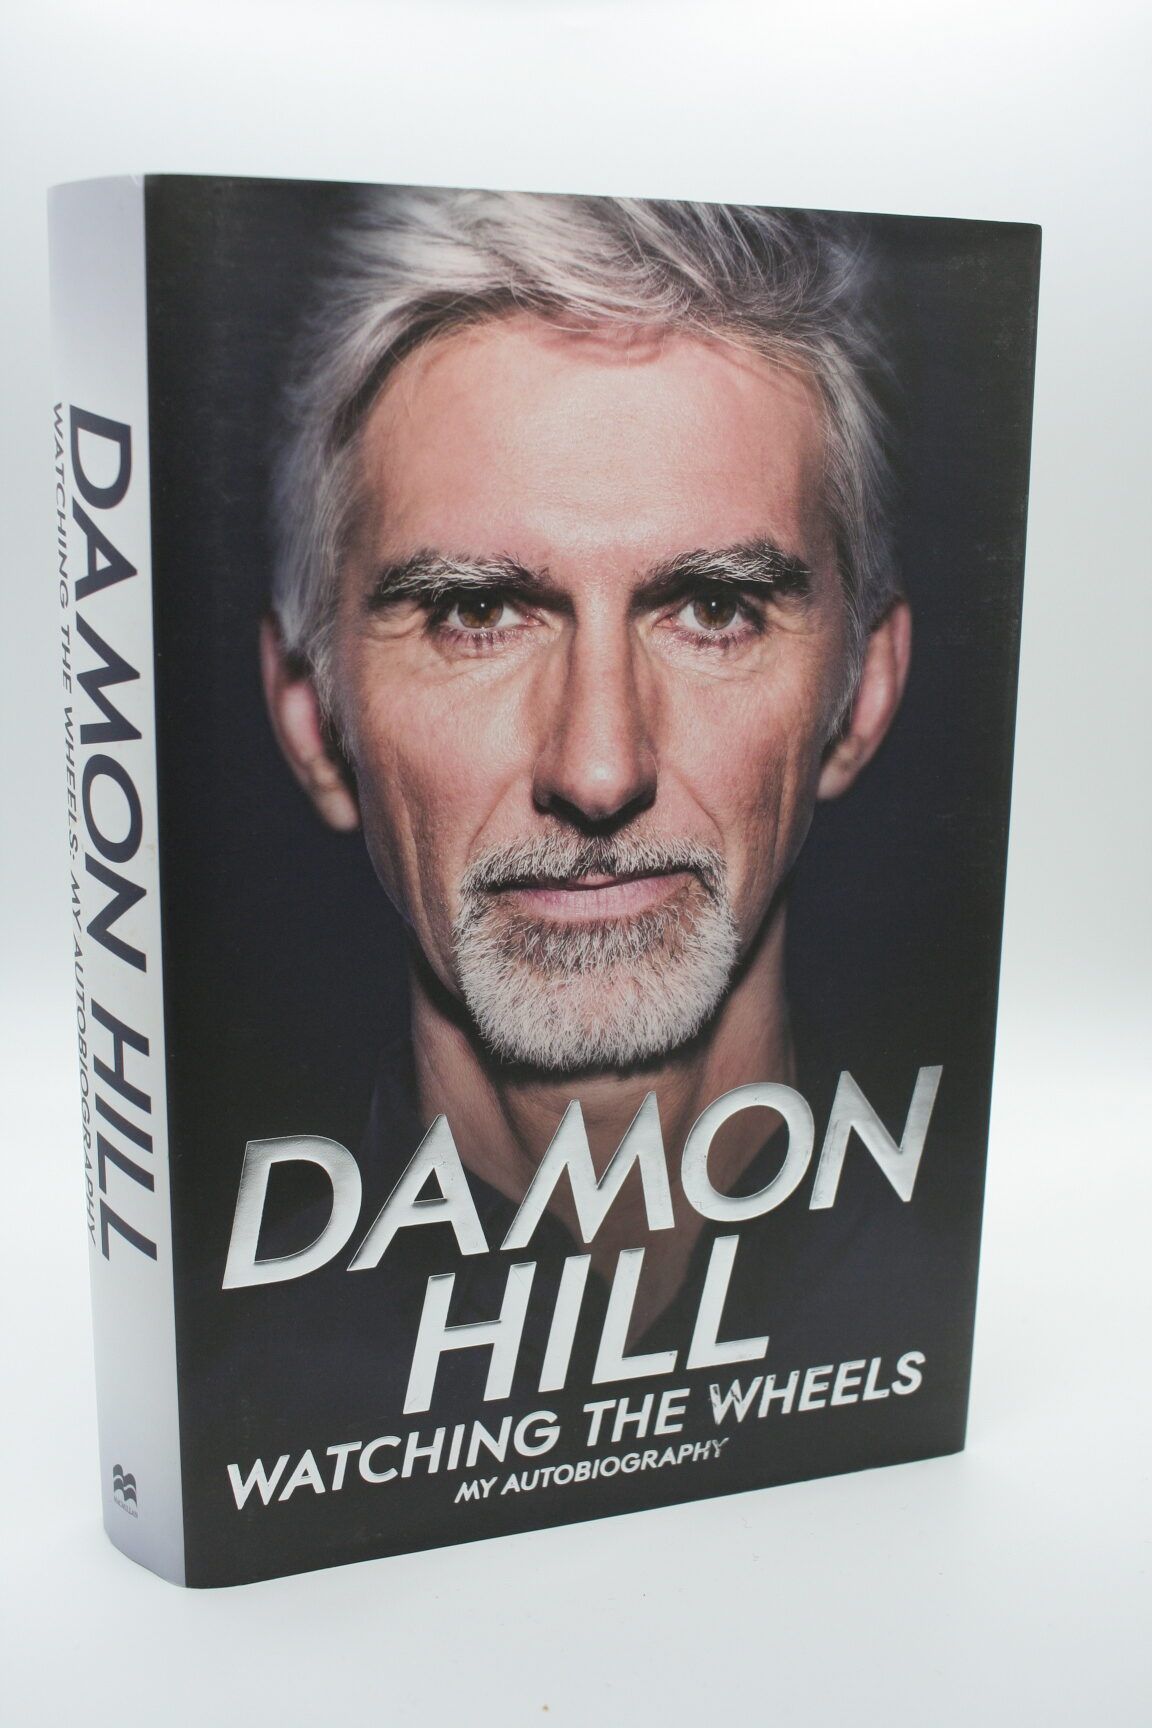 Watching the Wheels - Damon Hill